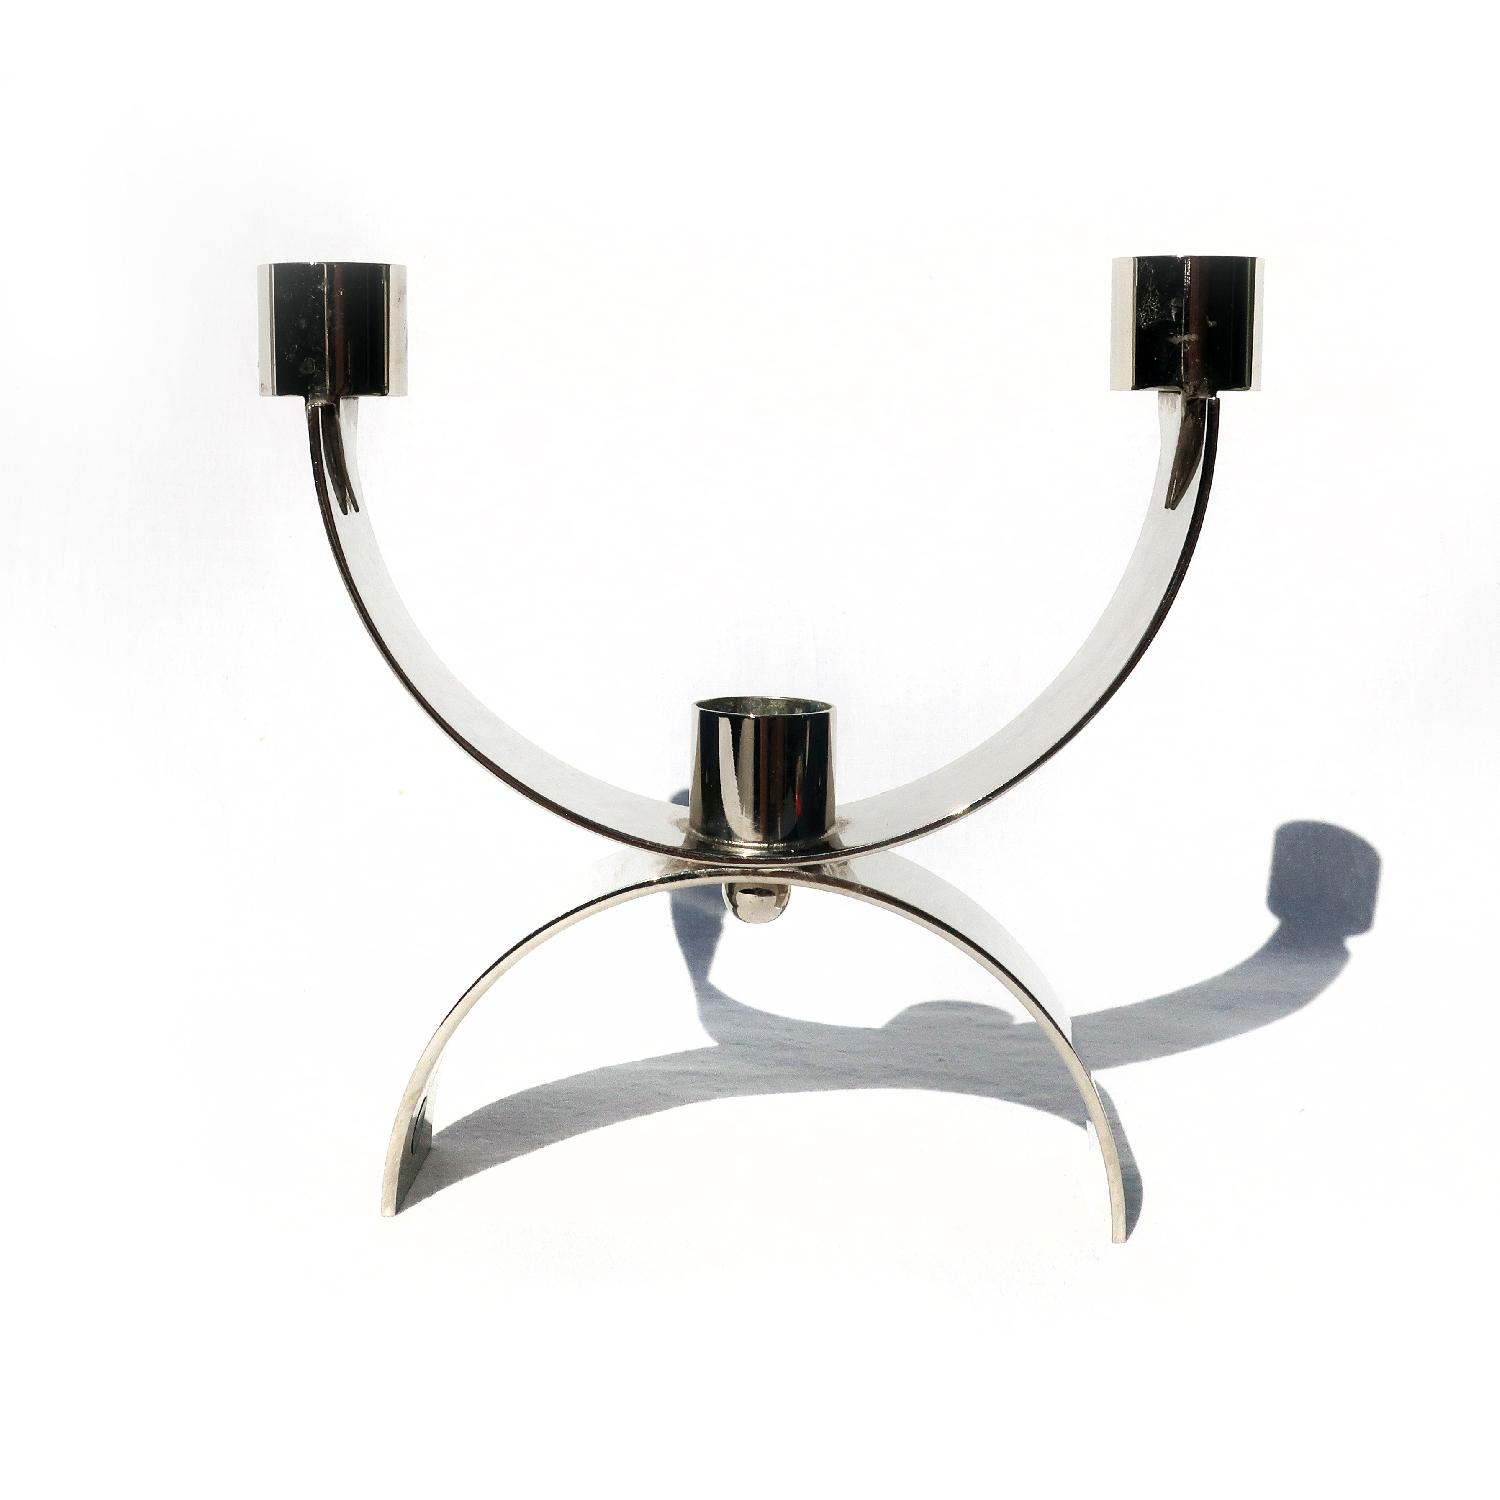 Italian Modern Chrome Candle Holder